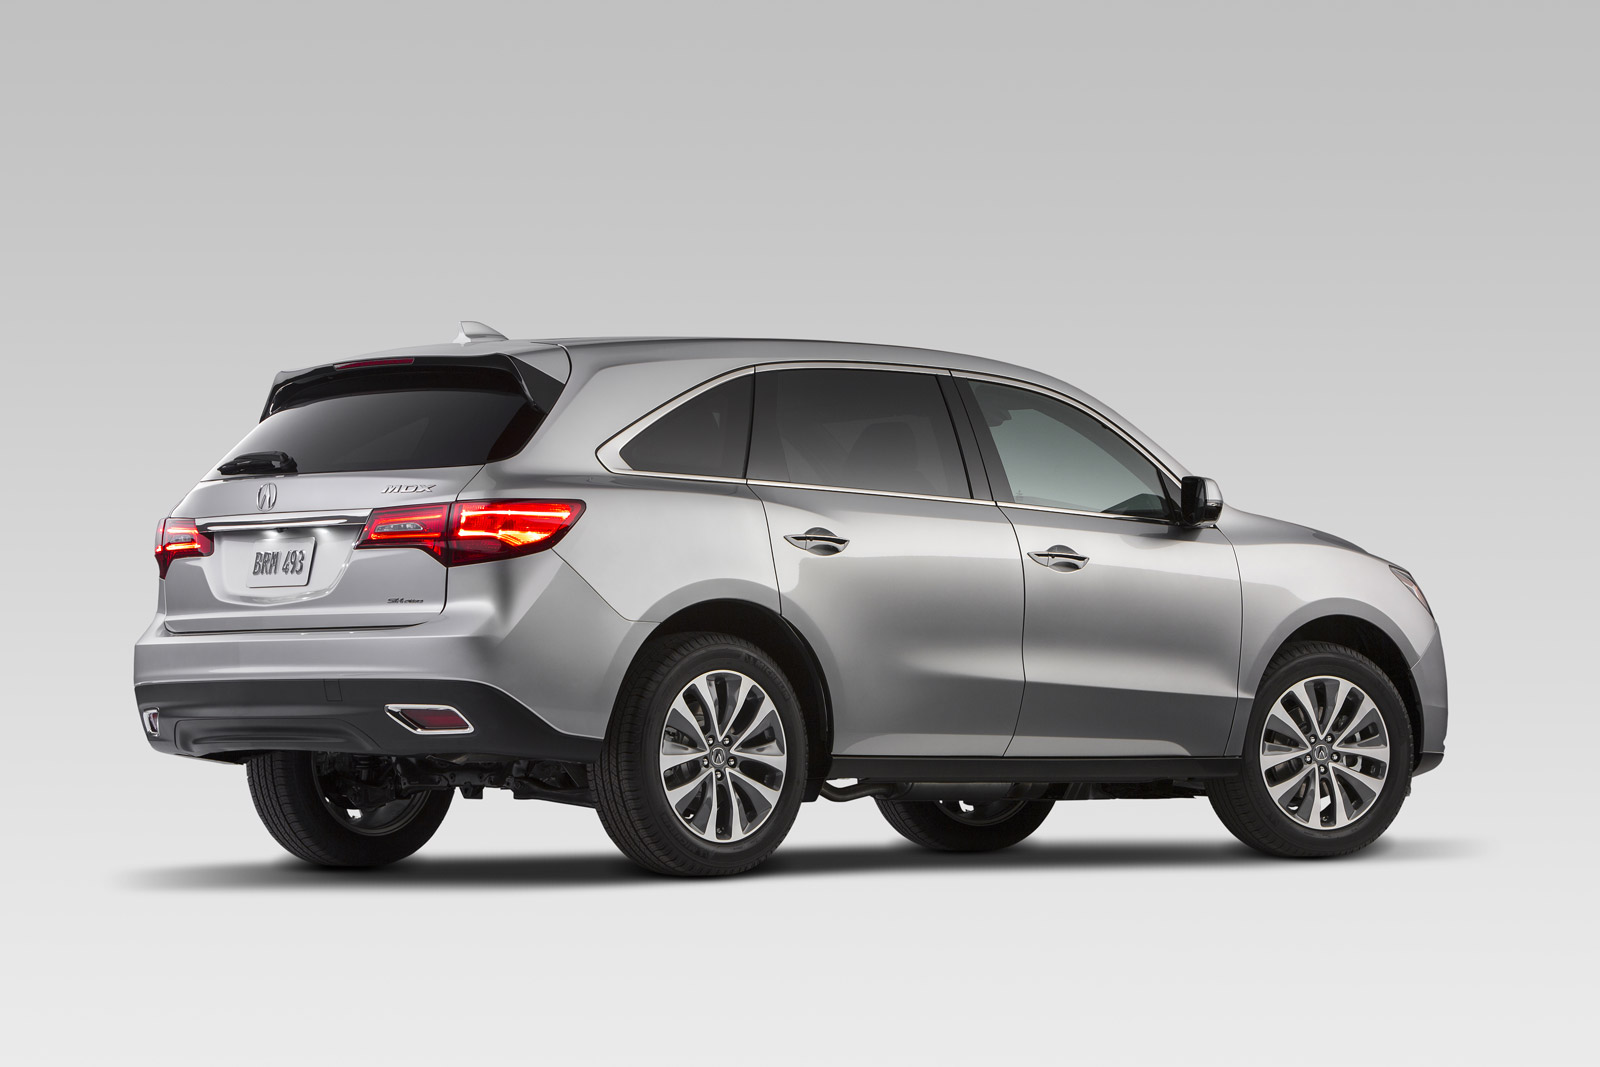 mdx overview cars sale preview nl cargurus acura near for in new pic fl pensacola